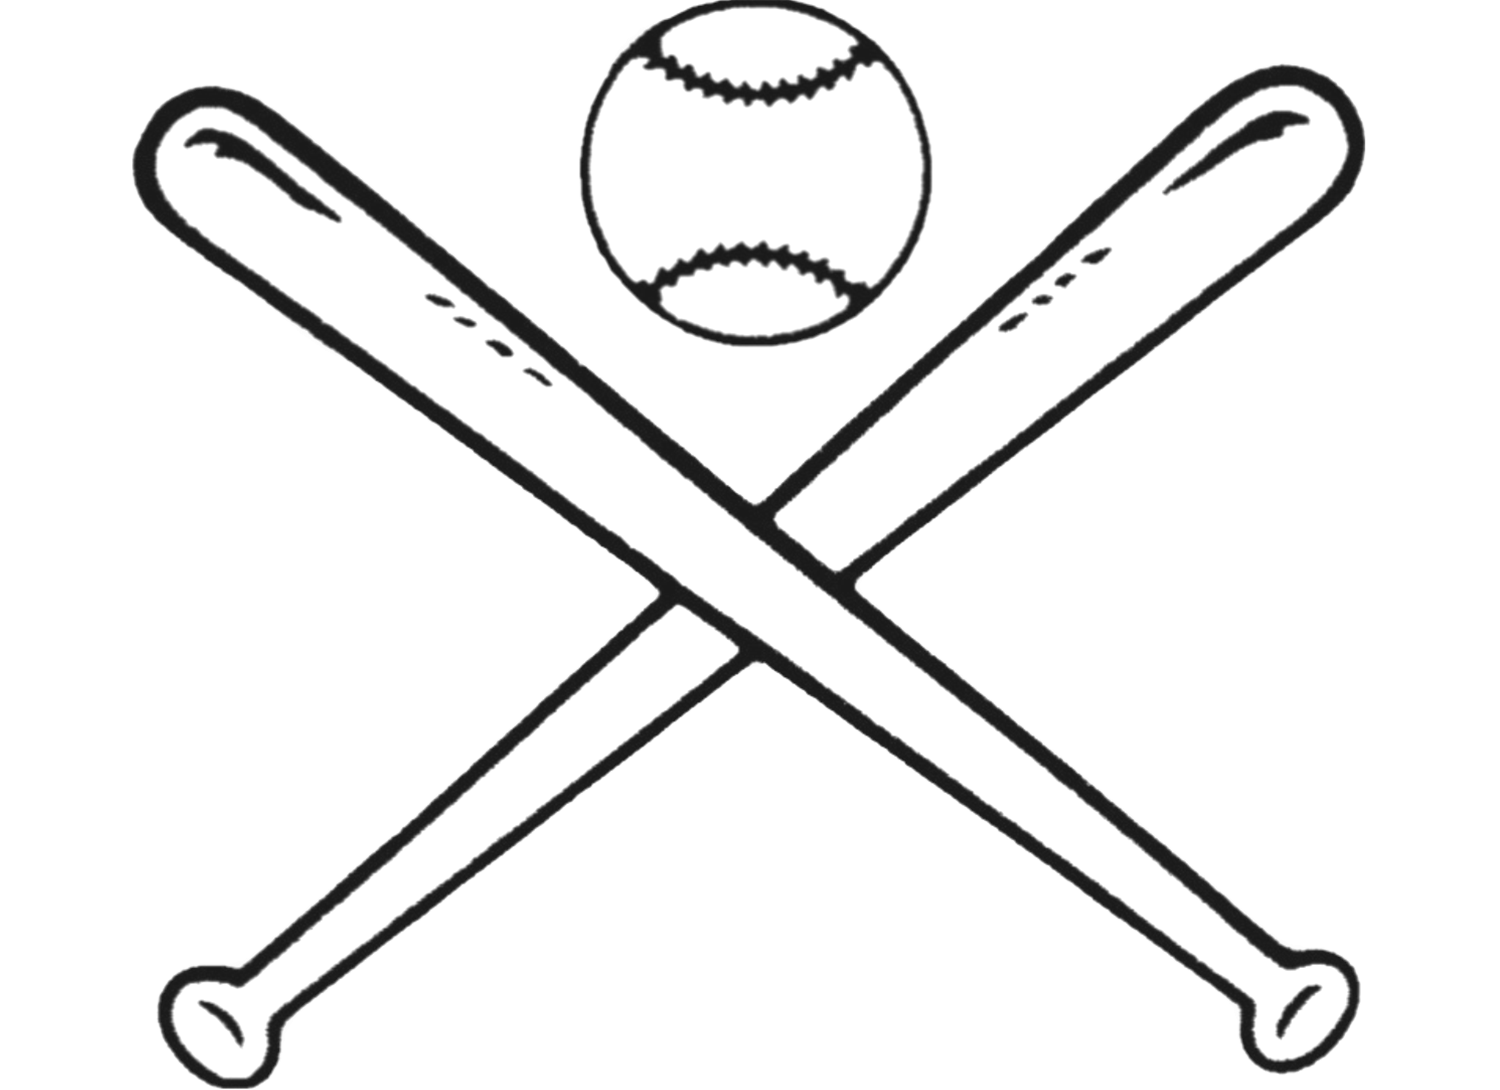 Baseball bat outline clipart svg transparent stock Baseball Bats Drawing Bat-and-ball games Clip art - sticks 1500*1090 ... svg transparent stock